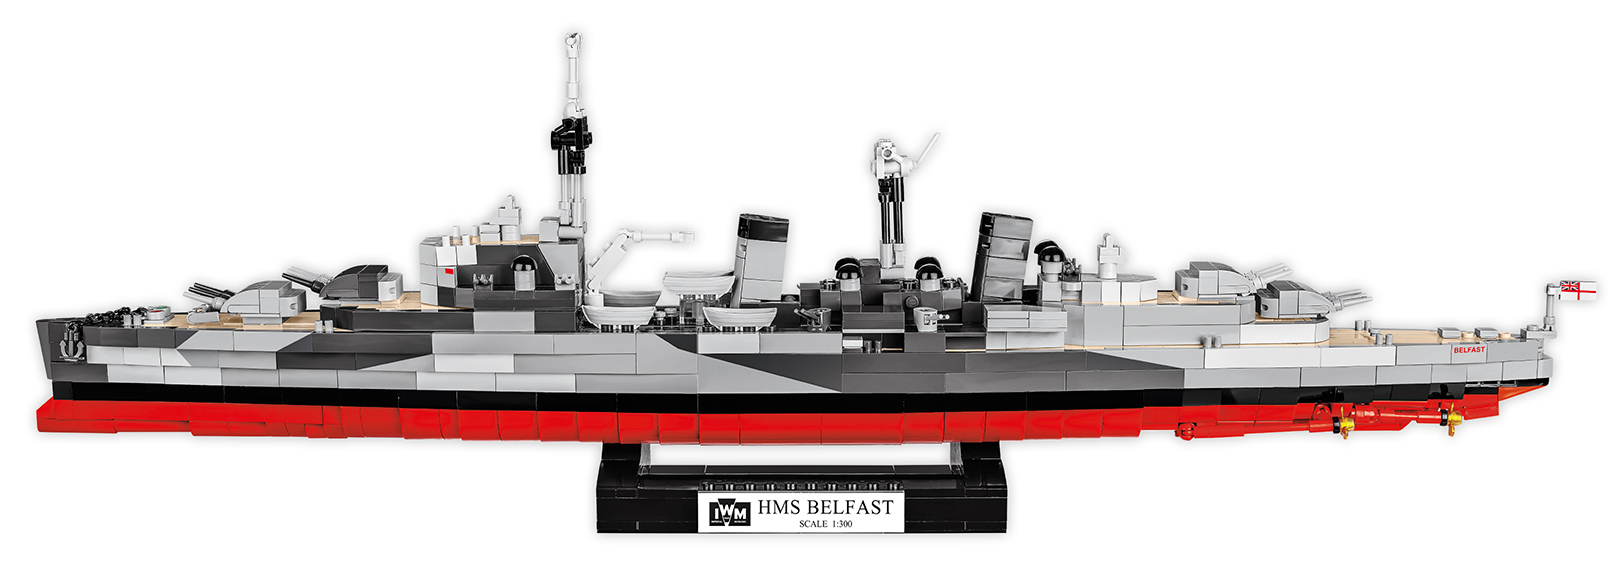 Cobi 4821 HMS Belfast Light Cruiser - Pad Printed!